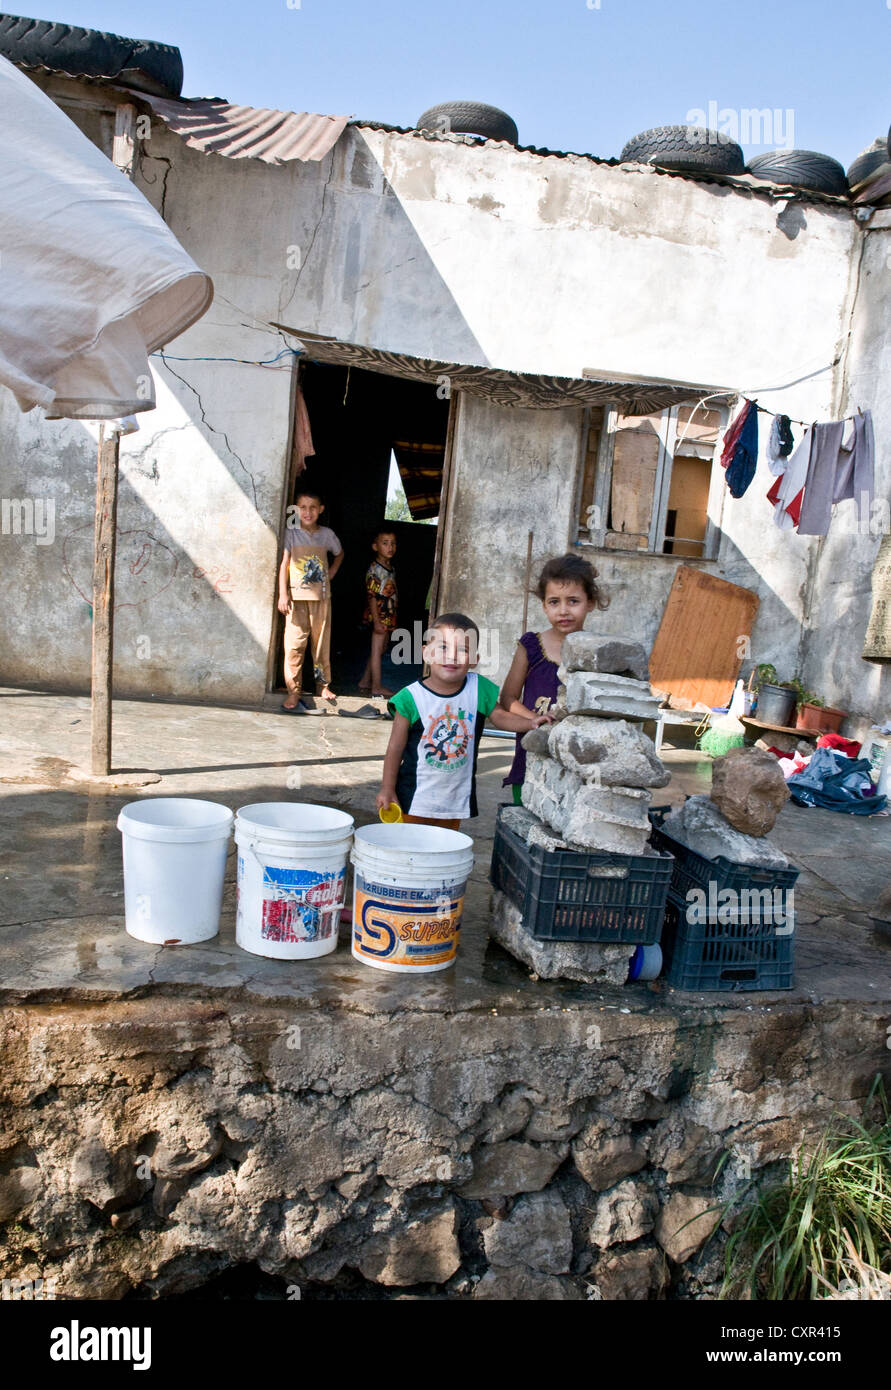 Syrian refugee children from Homs shelter in a home across the border in the northern Lebanese region of Wadi Khaled. - Stock Image